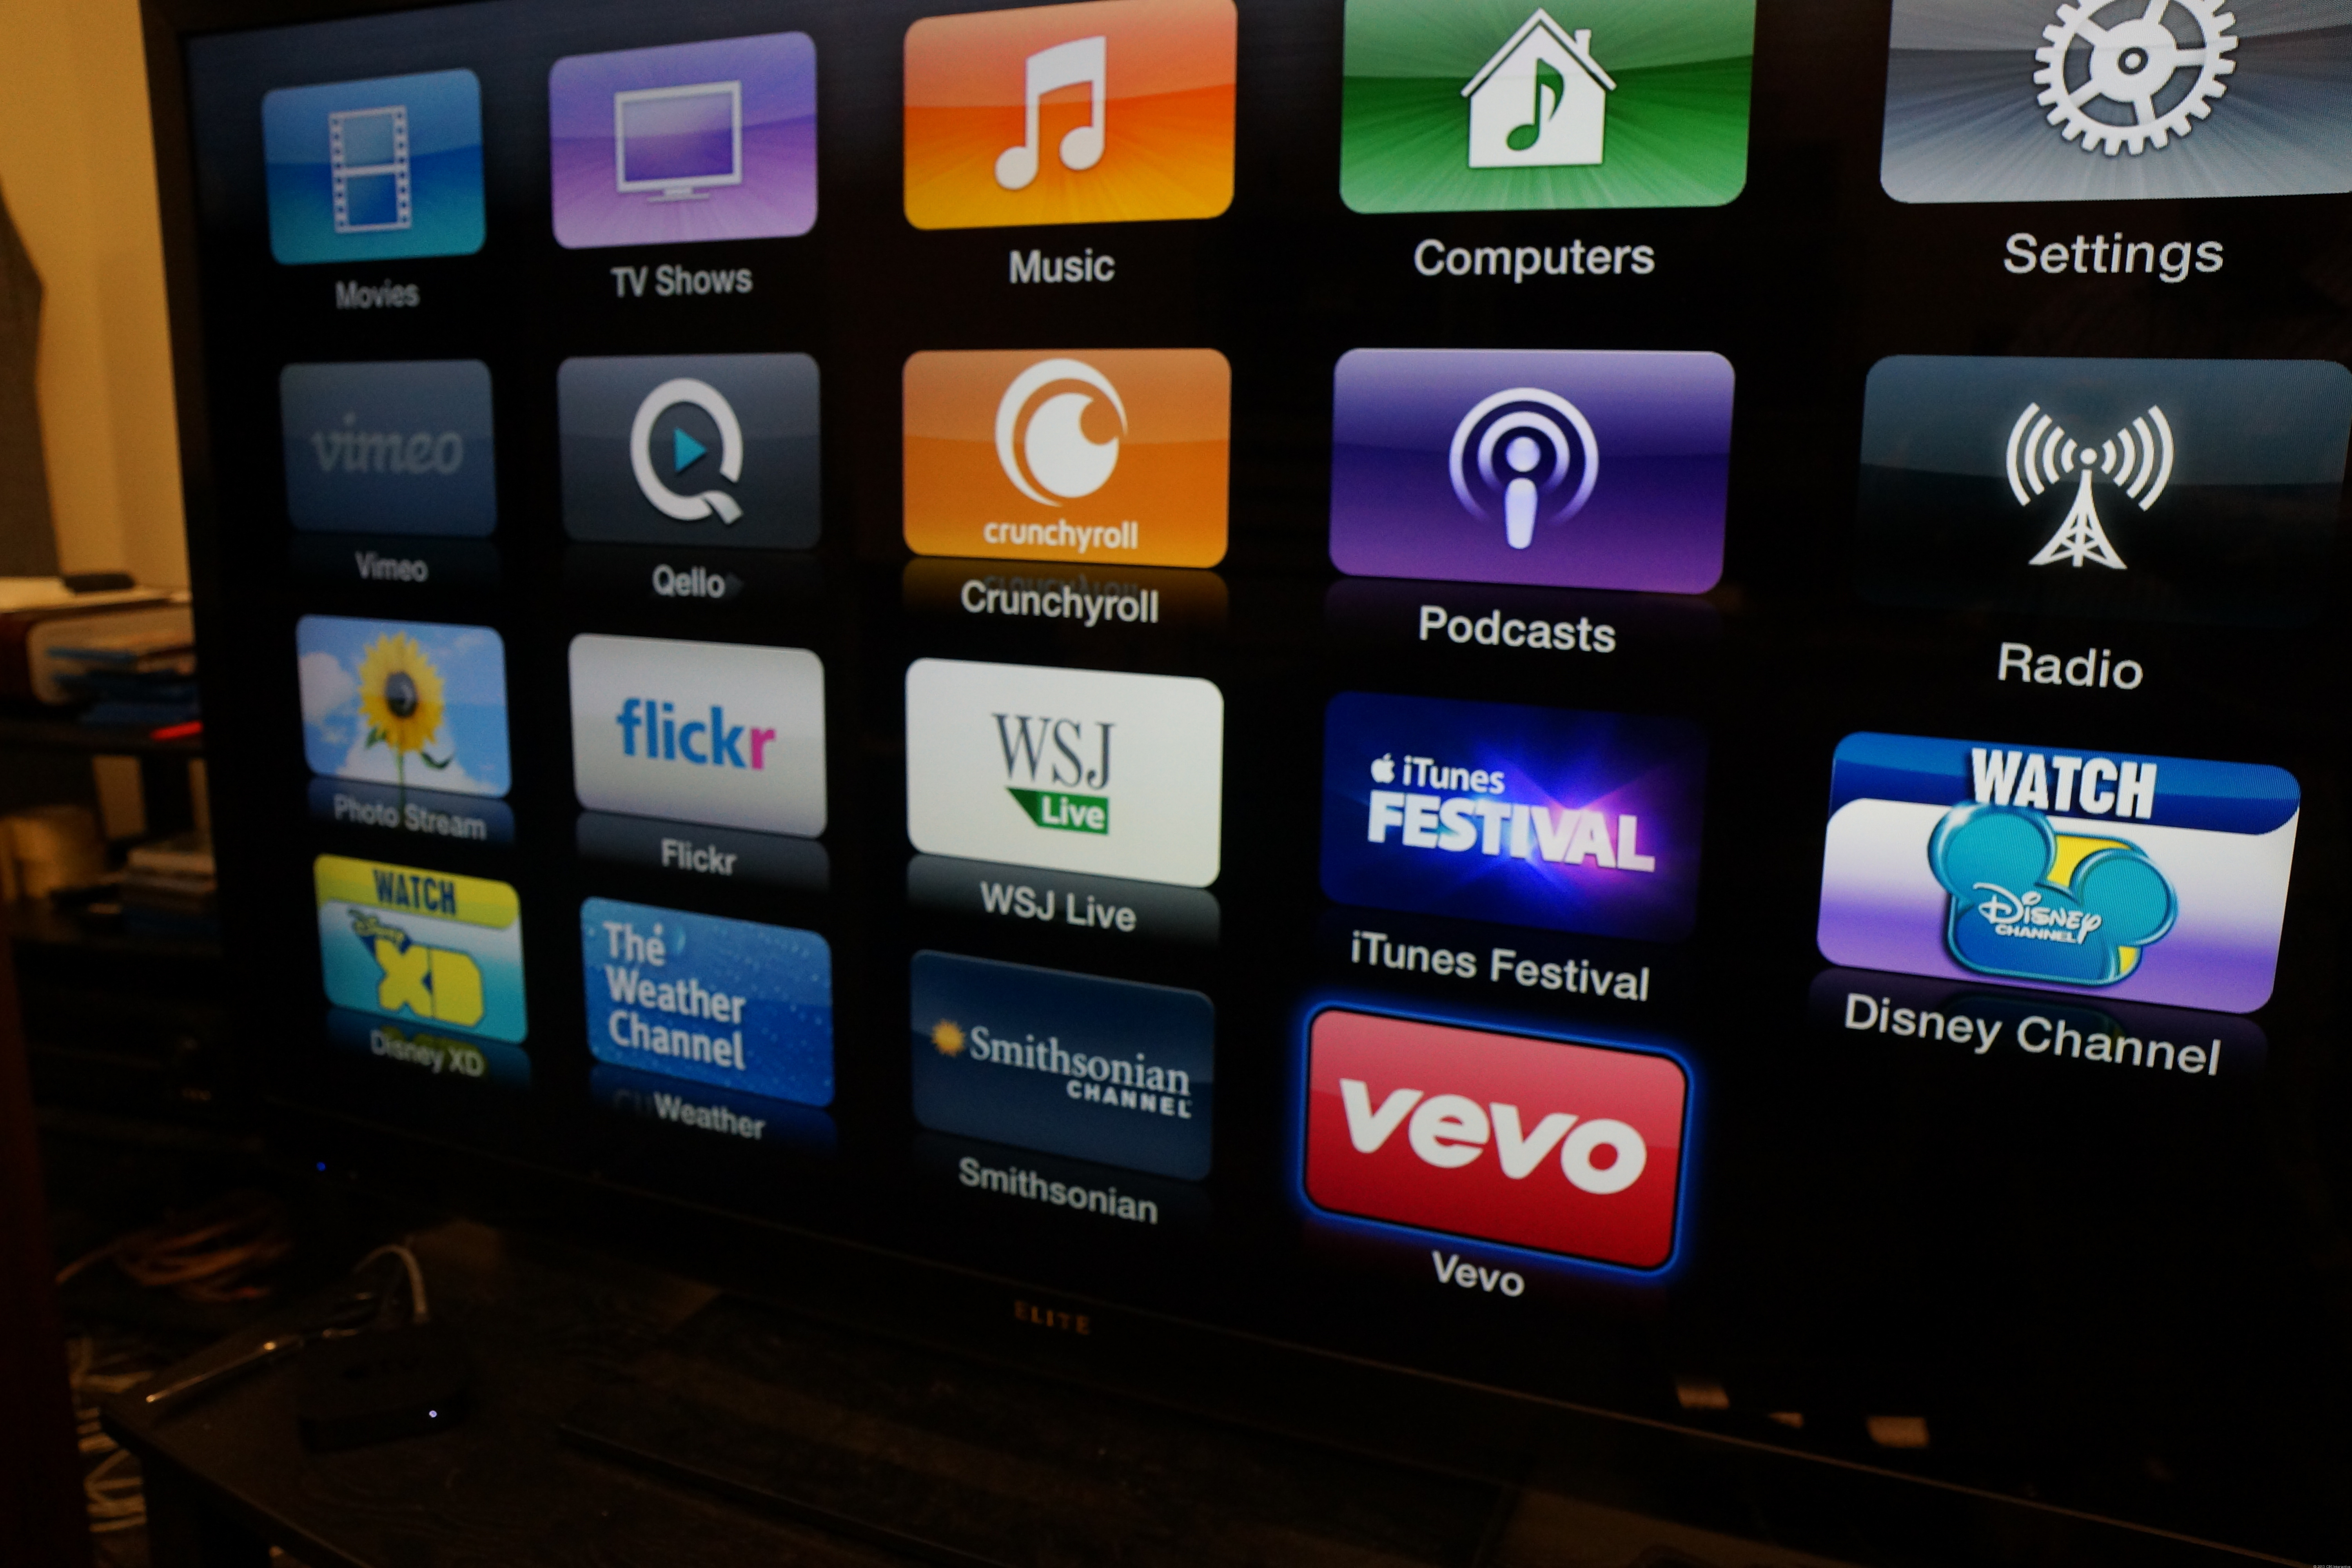 The Apple TV added five new apps this morning.